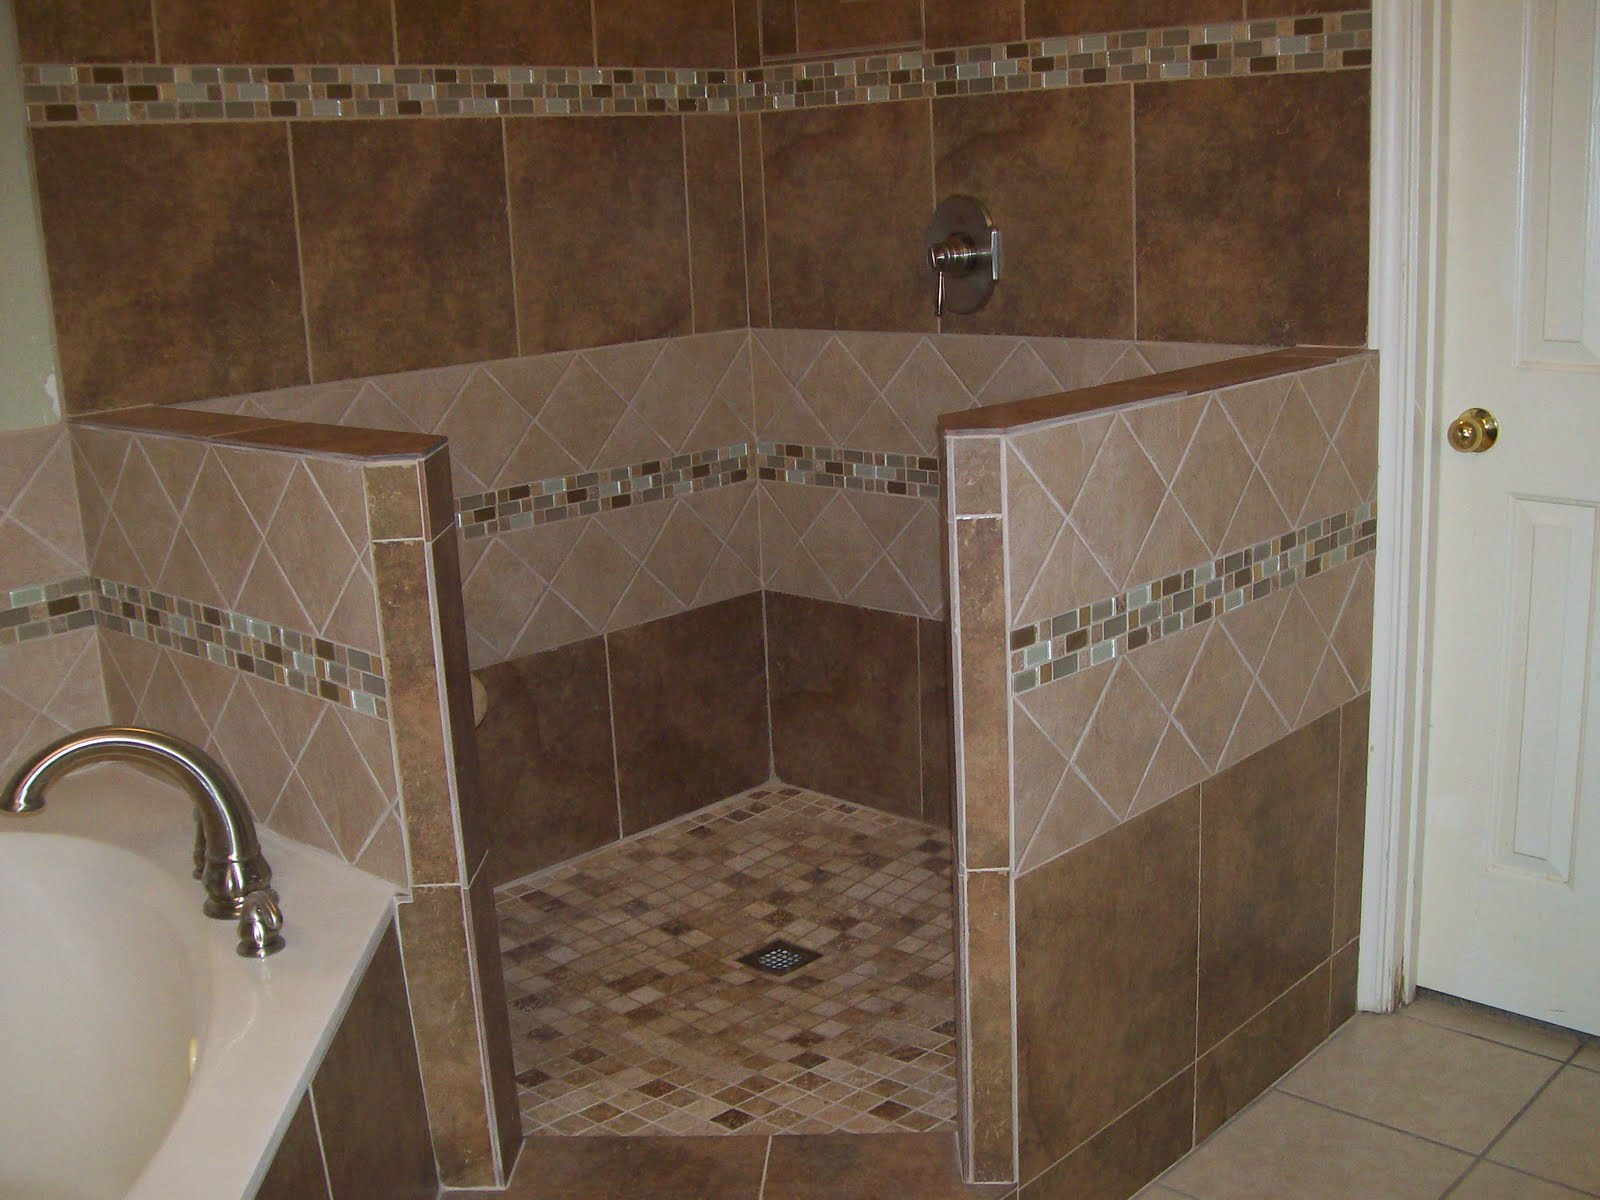 Bathroom Shower Chairs | what to wear with khaki pants